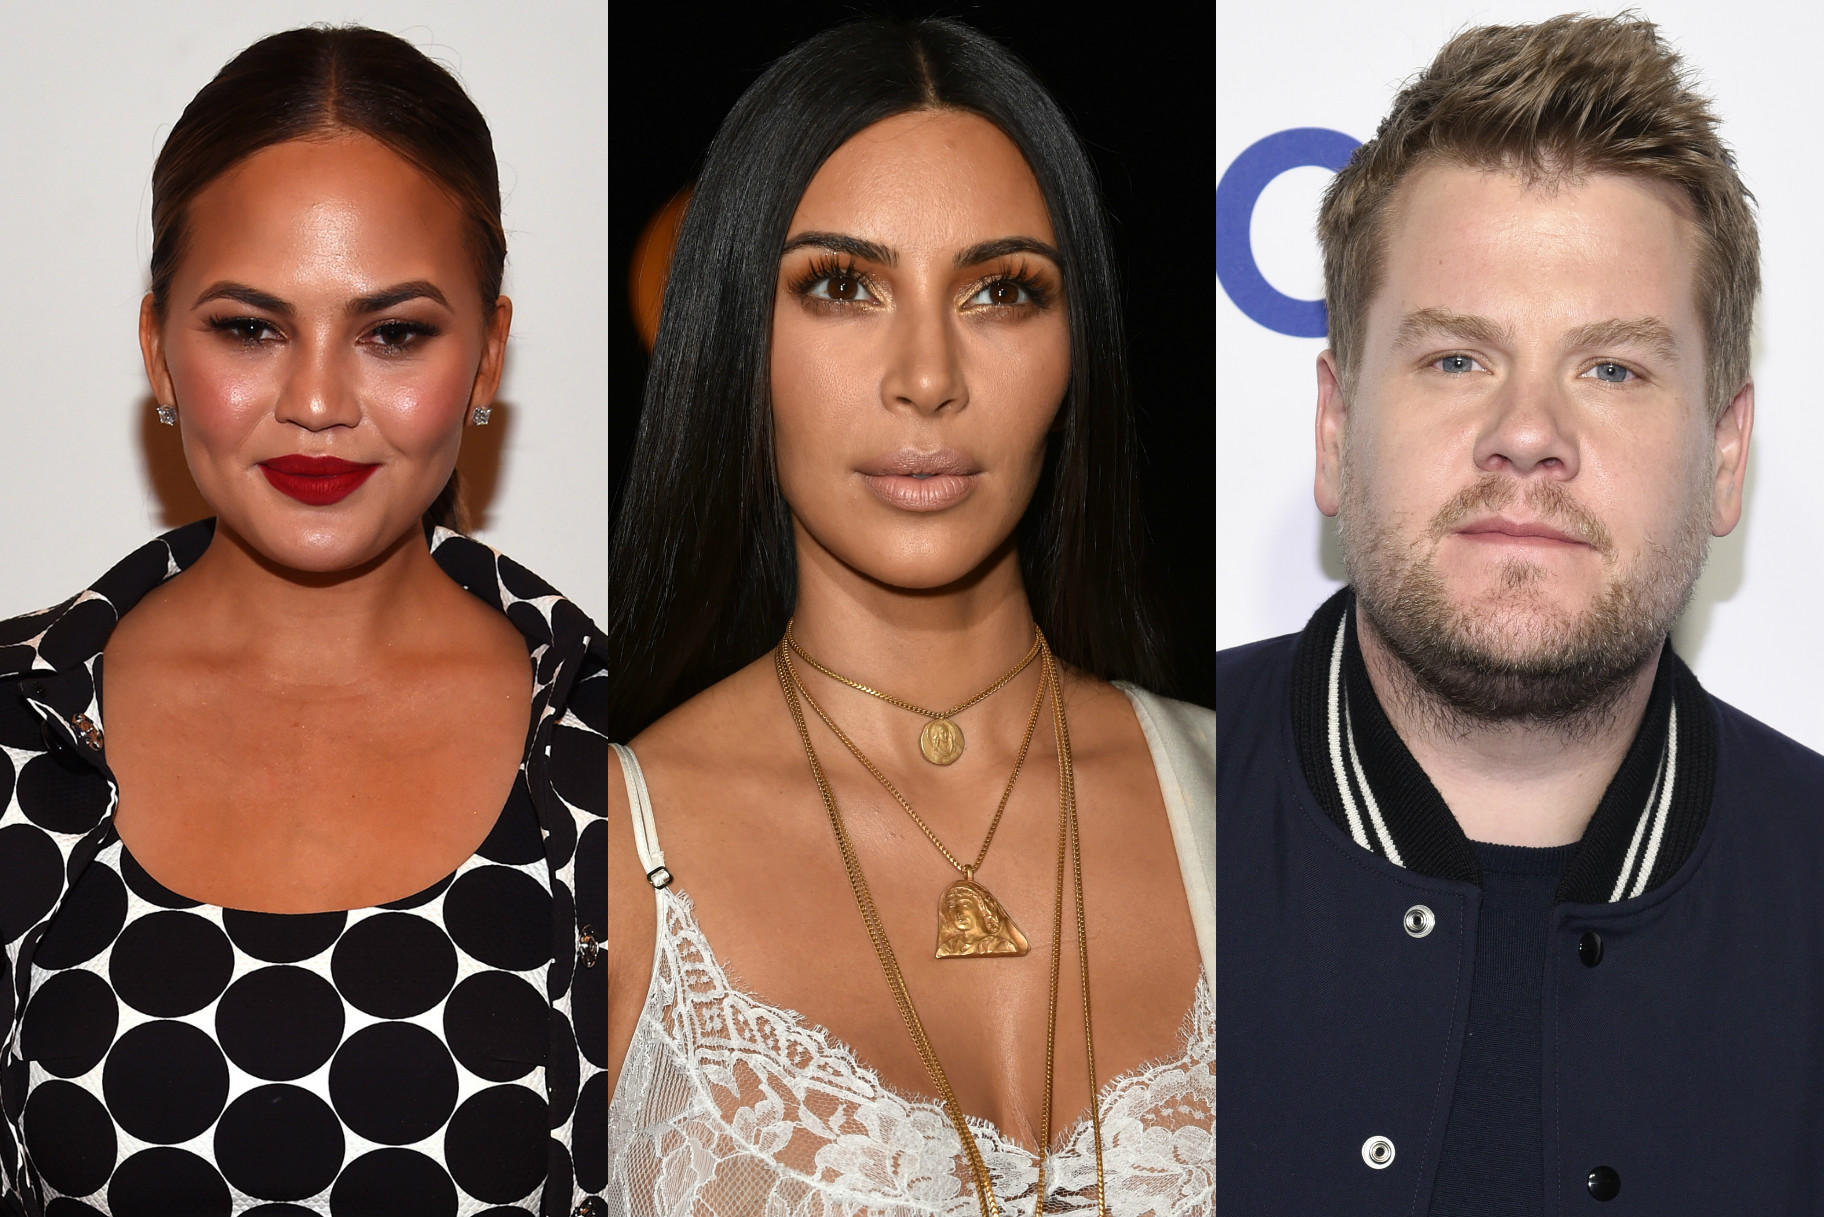 Chrissy Teigen and James Corden Defend Kim K From Haters After Paris Robbery